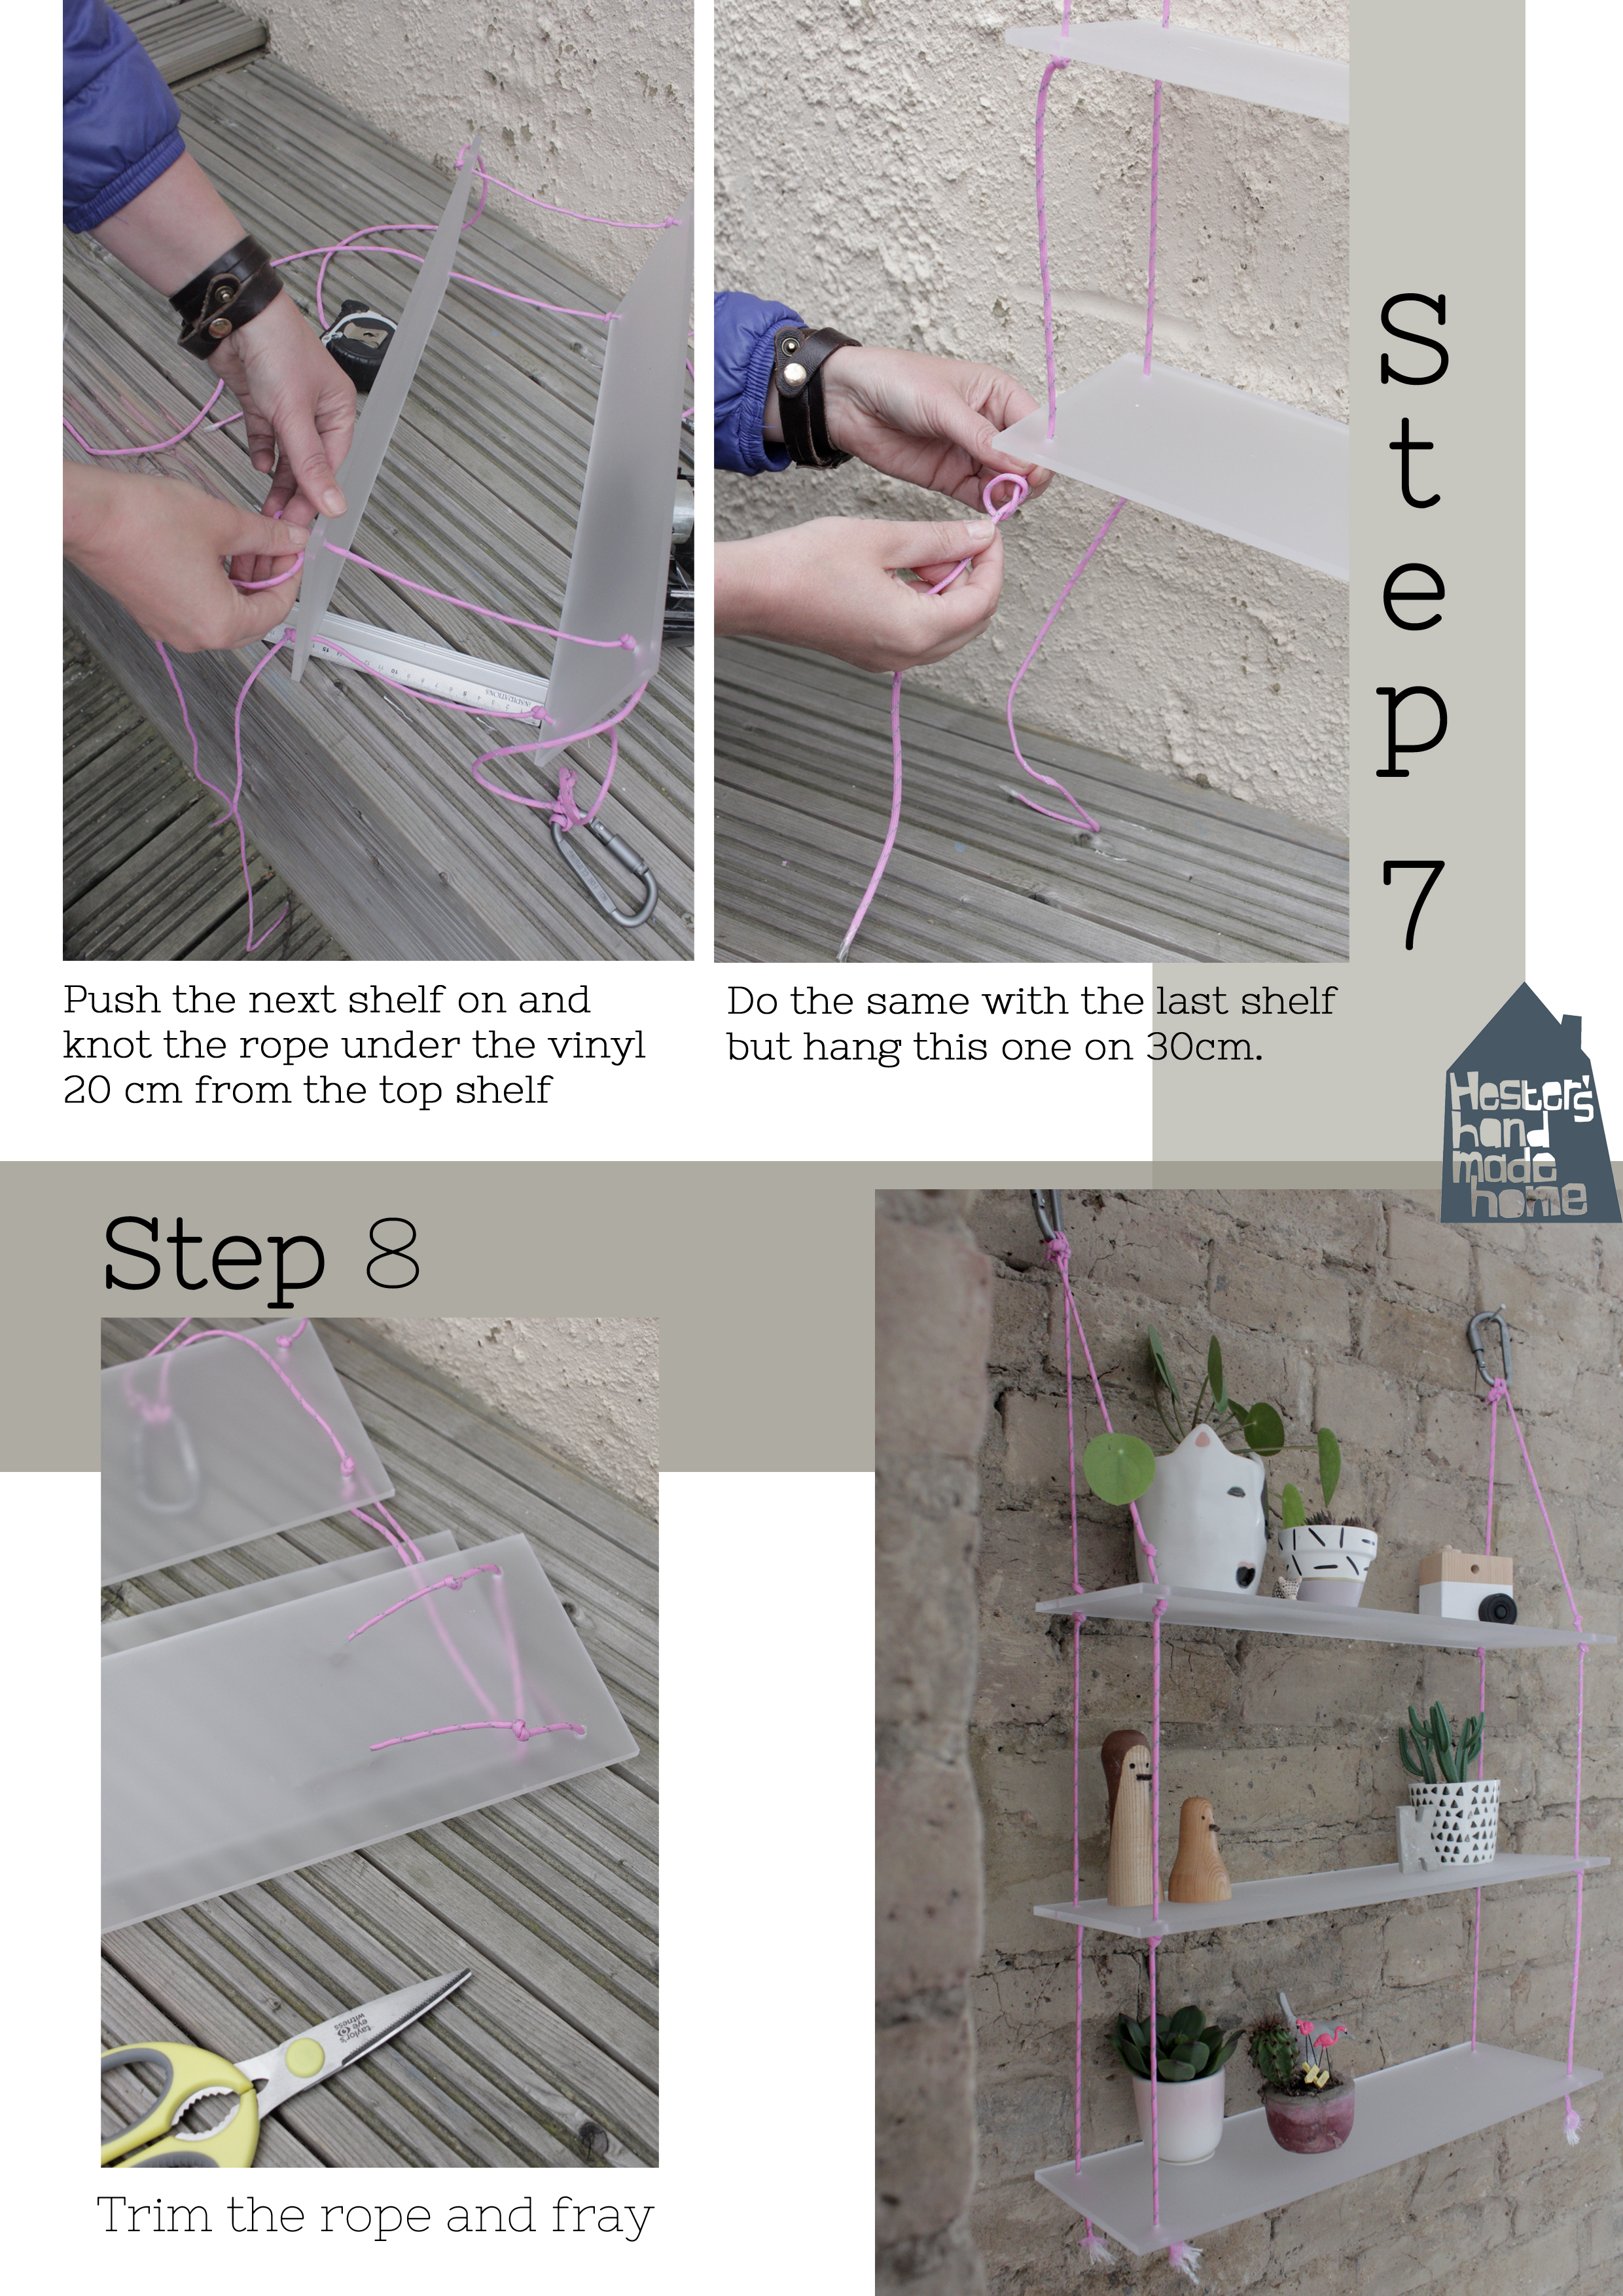 How to make an acrylic sheet rope shelf part 3 by hester's handmade home